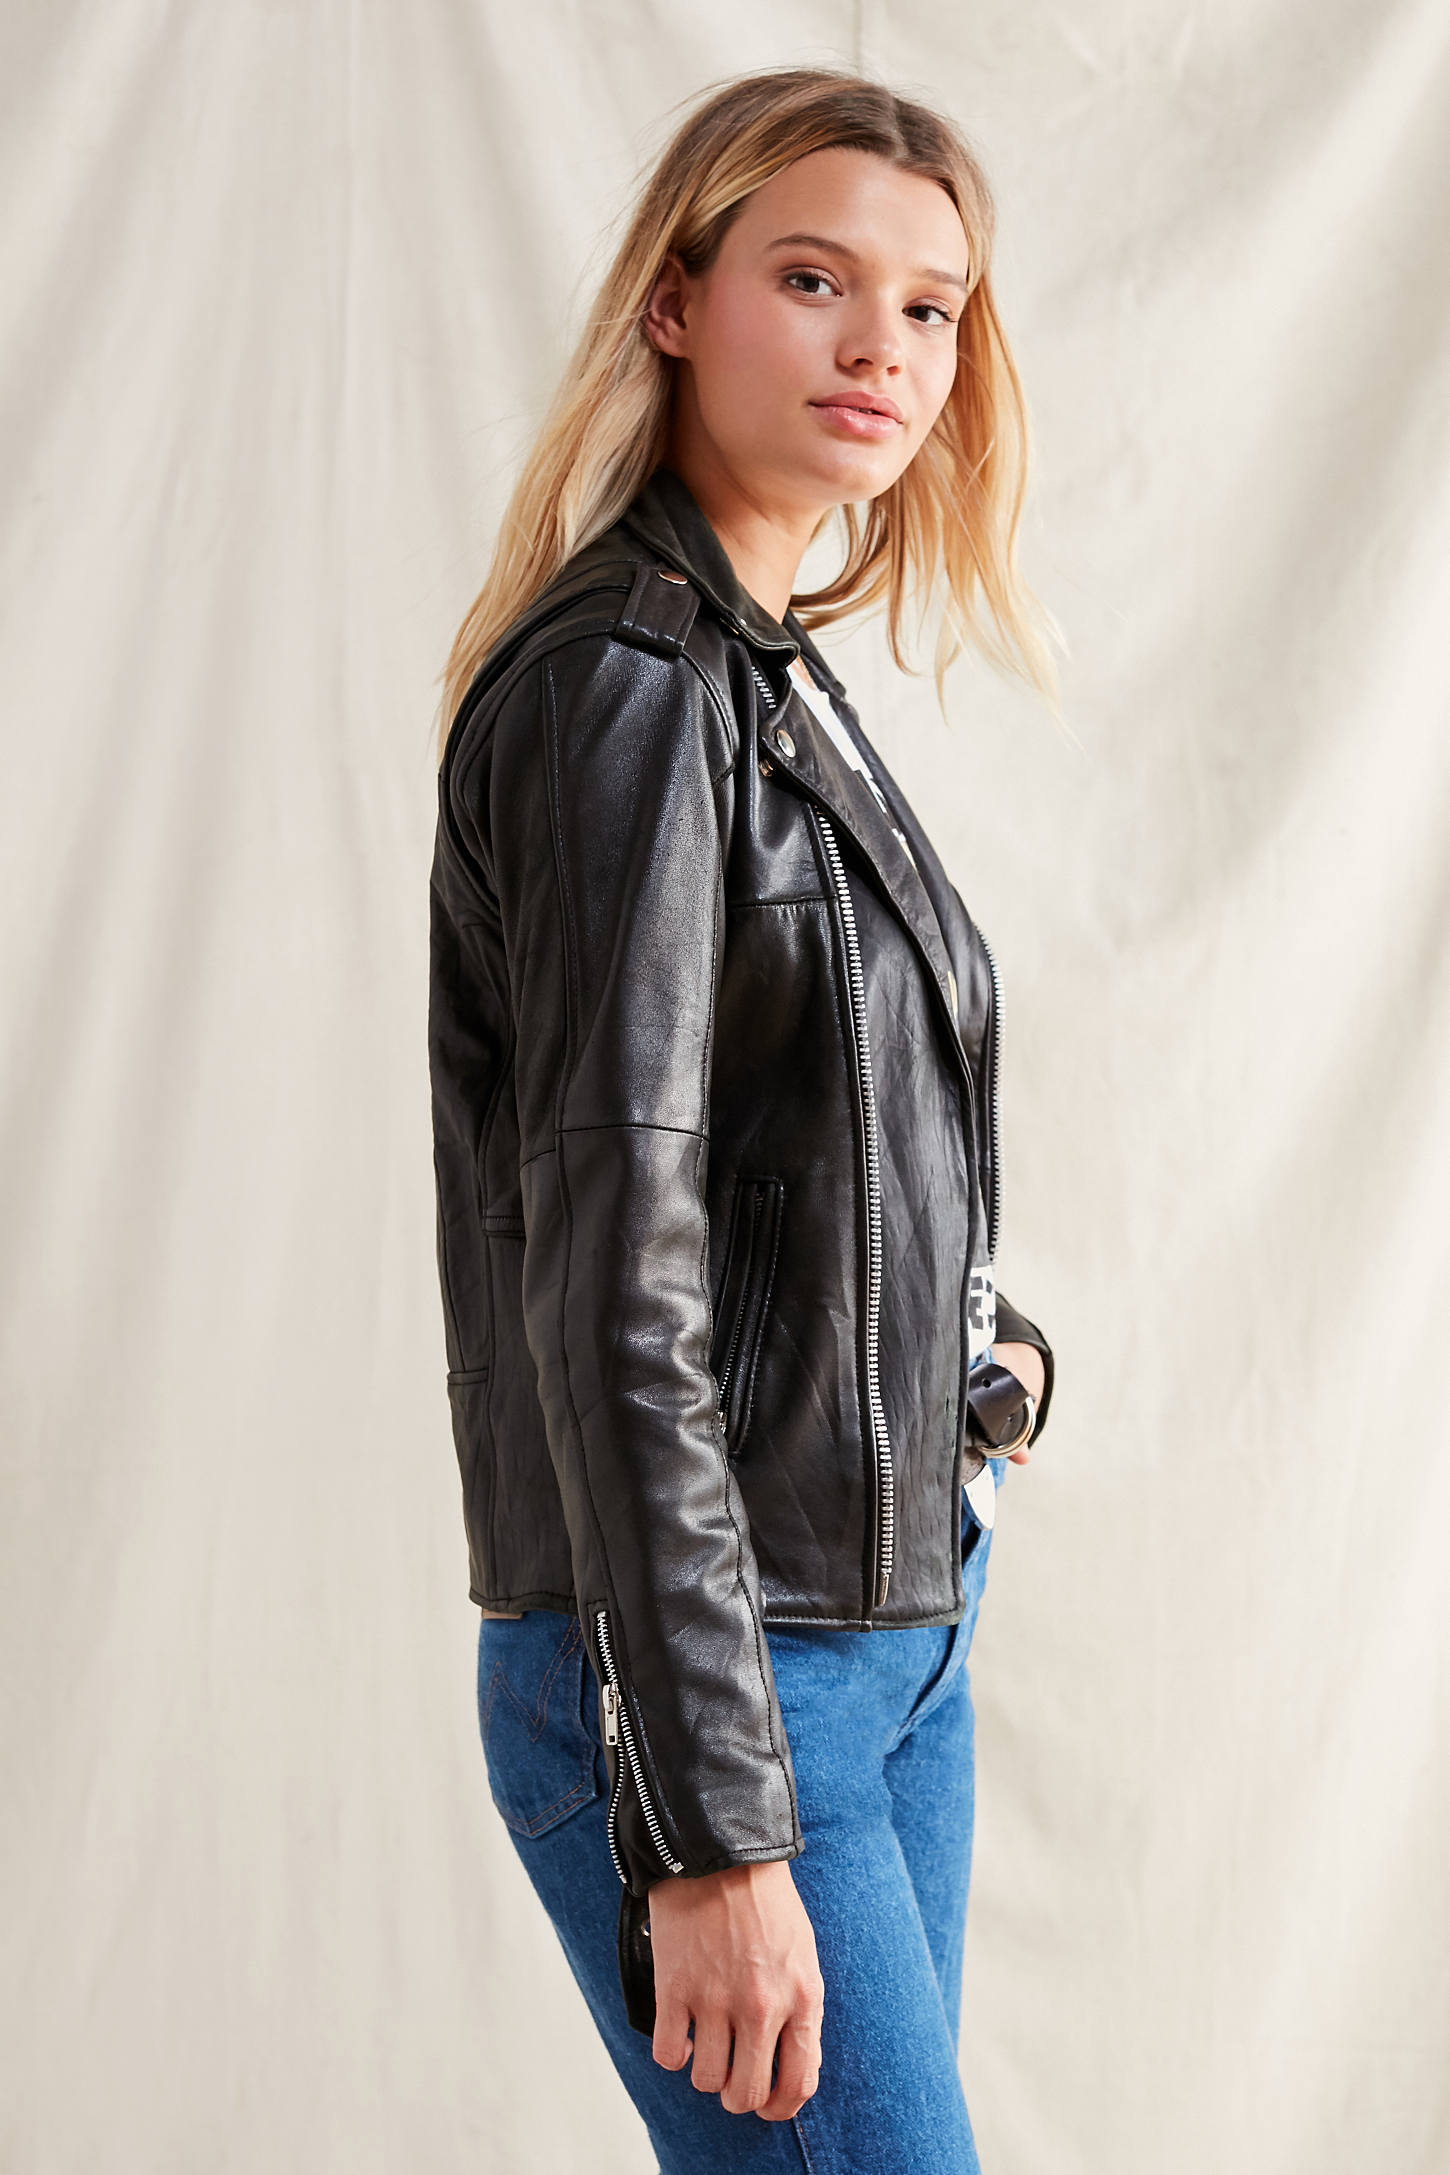 Leather jacket urban outfitters - Slide View 5 Pelechecoco Leather Moto Jacket